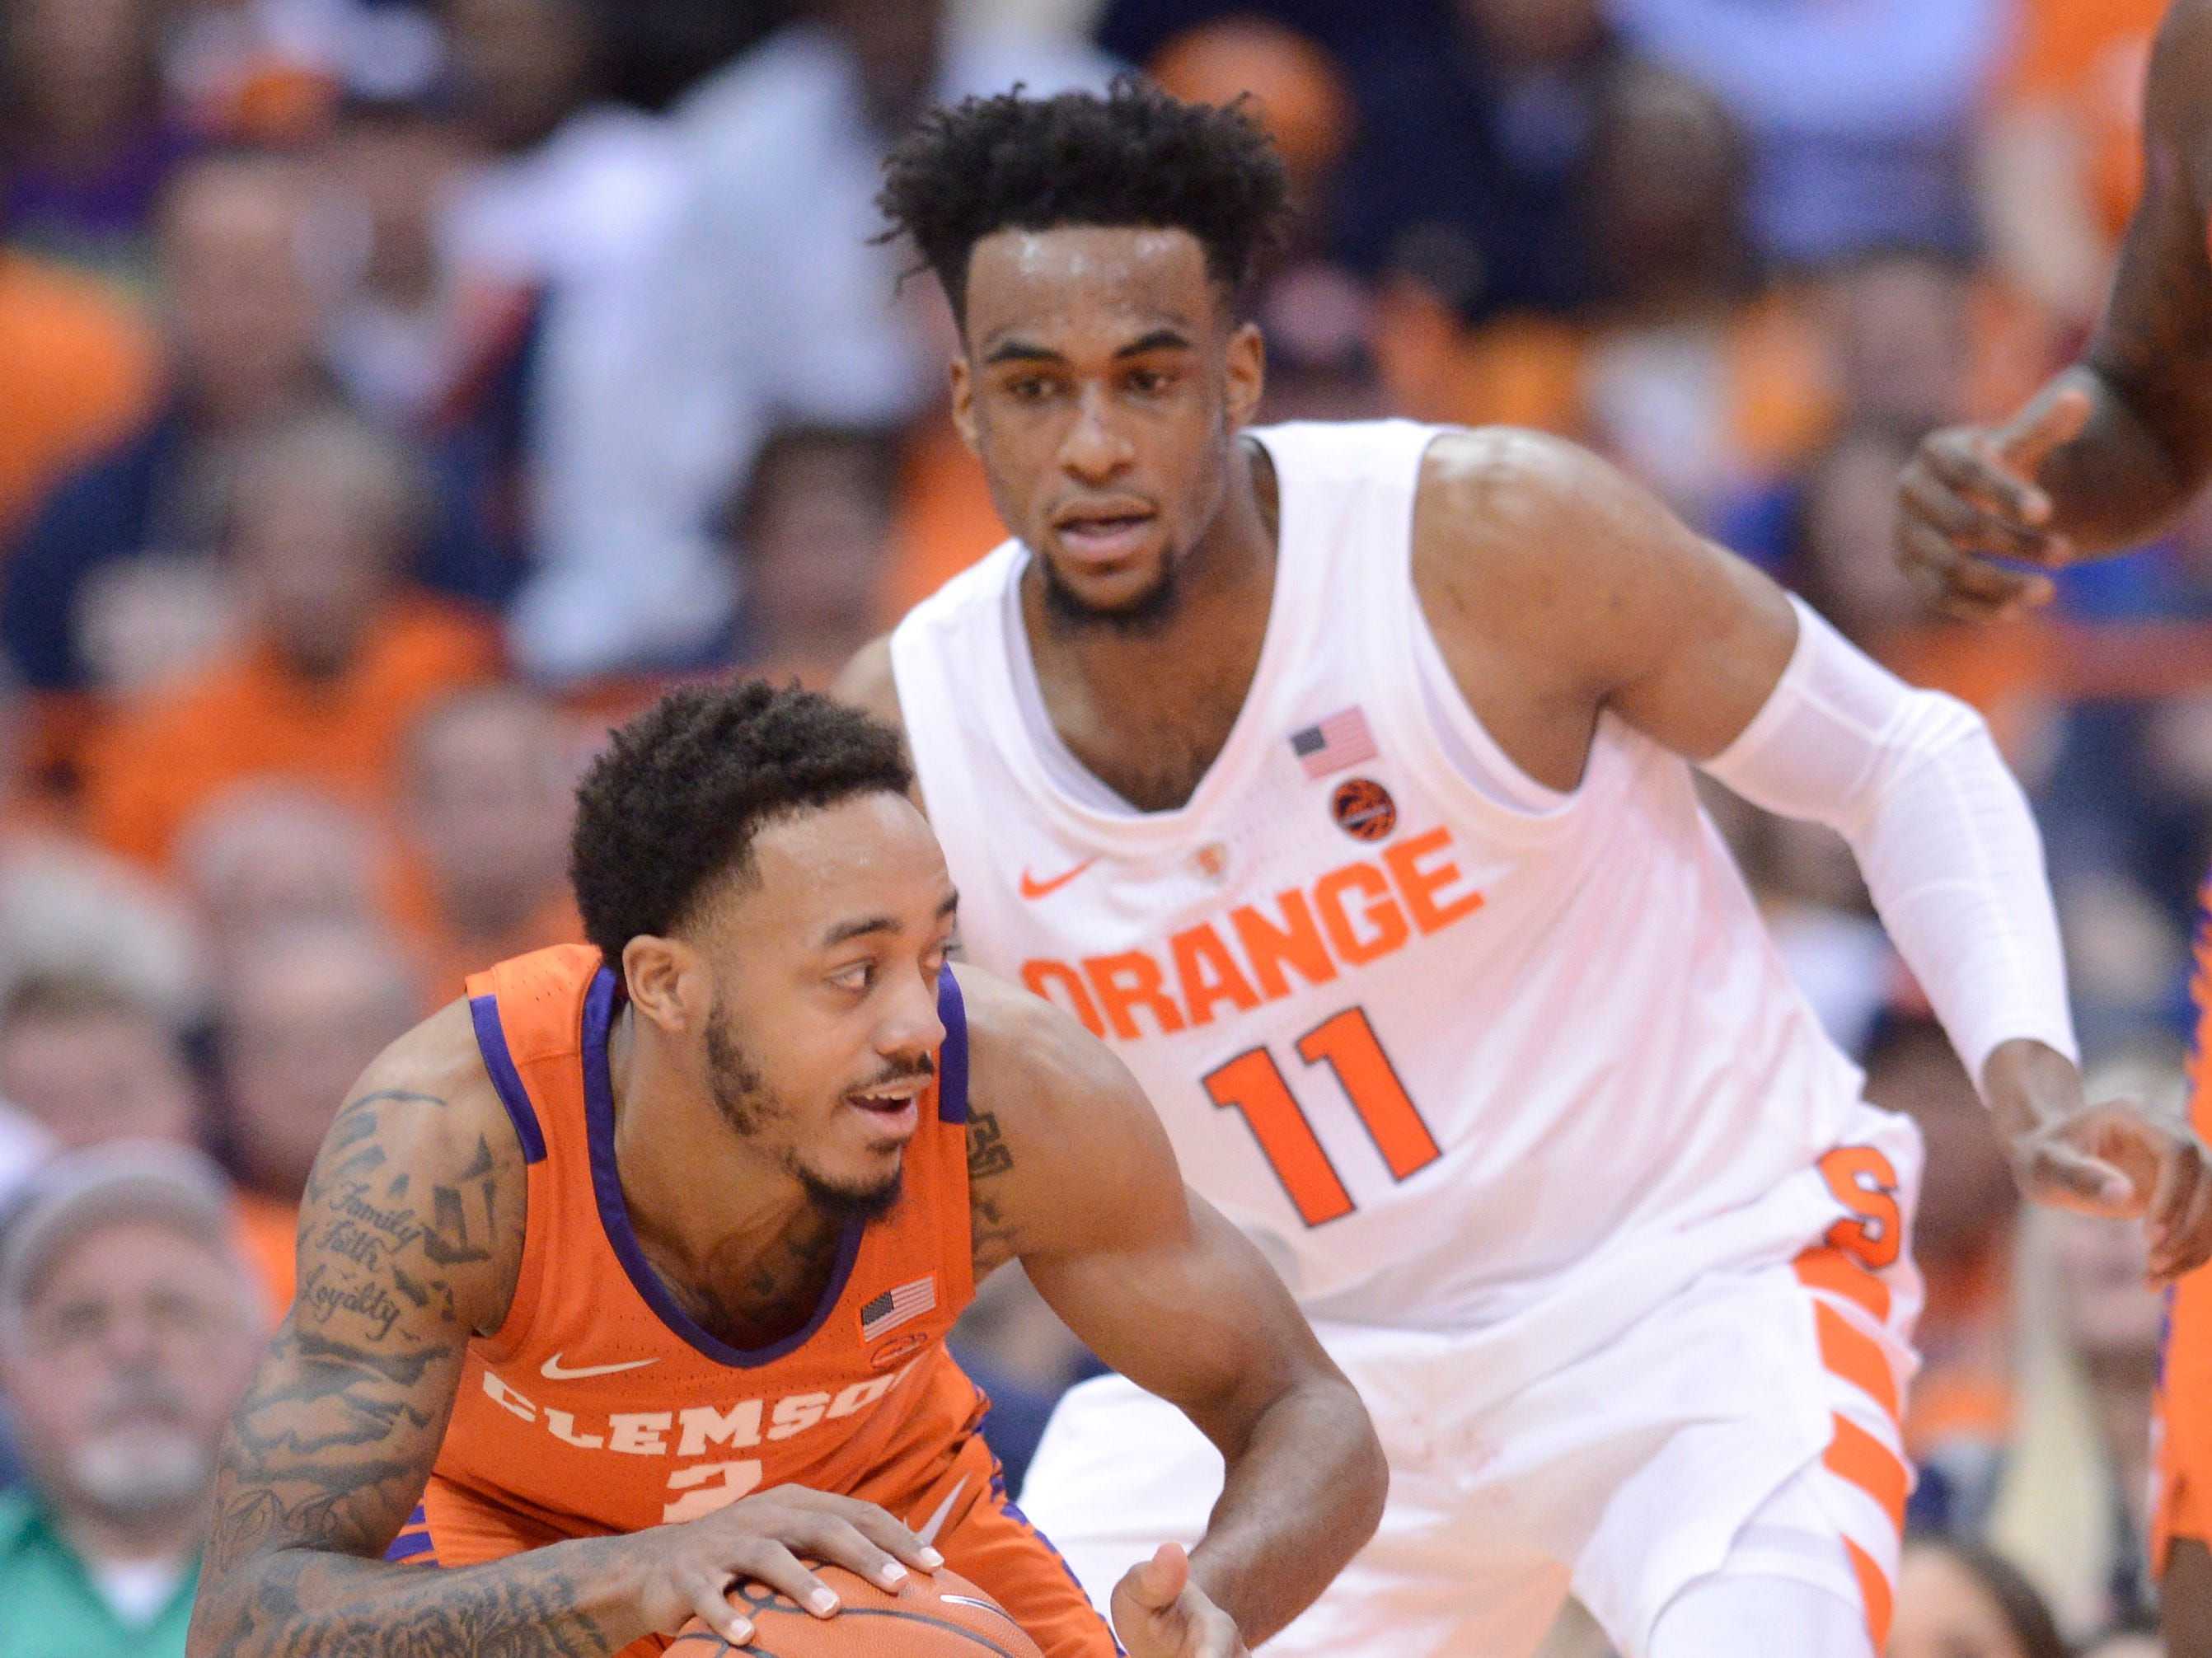 Jan 9, 2019; Syracuse, NY, USA; Clemson Tigers guard Marcquise Reed (2) protects the ball against Syracuse Orange forward Oshae Brissett (11) during the second half at the Carrier Dome.